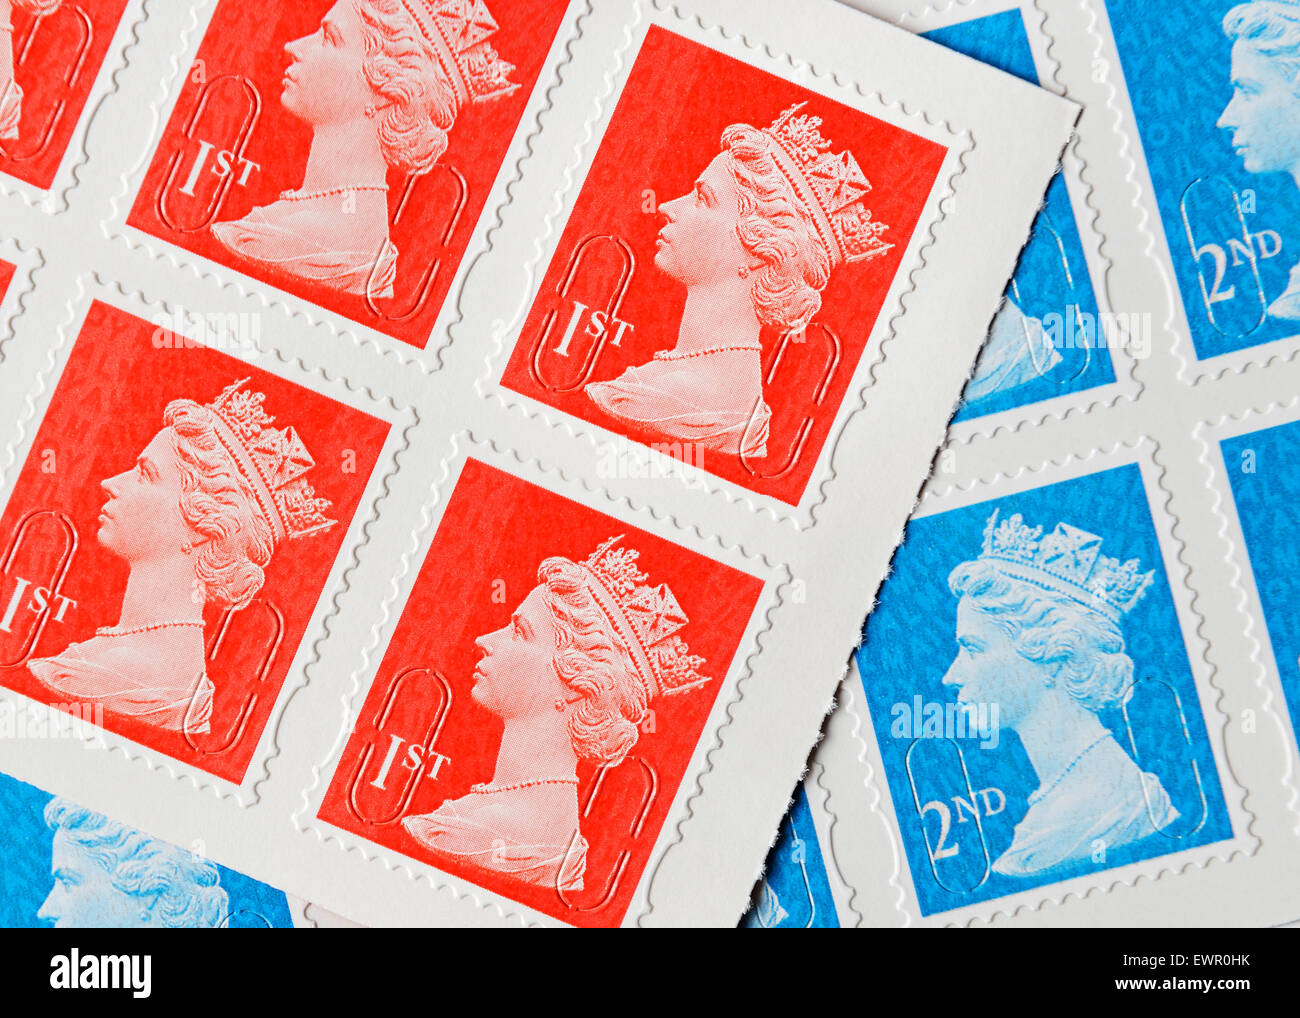 UK Postage Stamps. - Stock Image